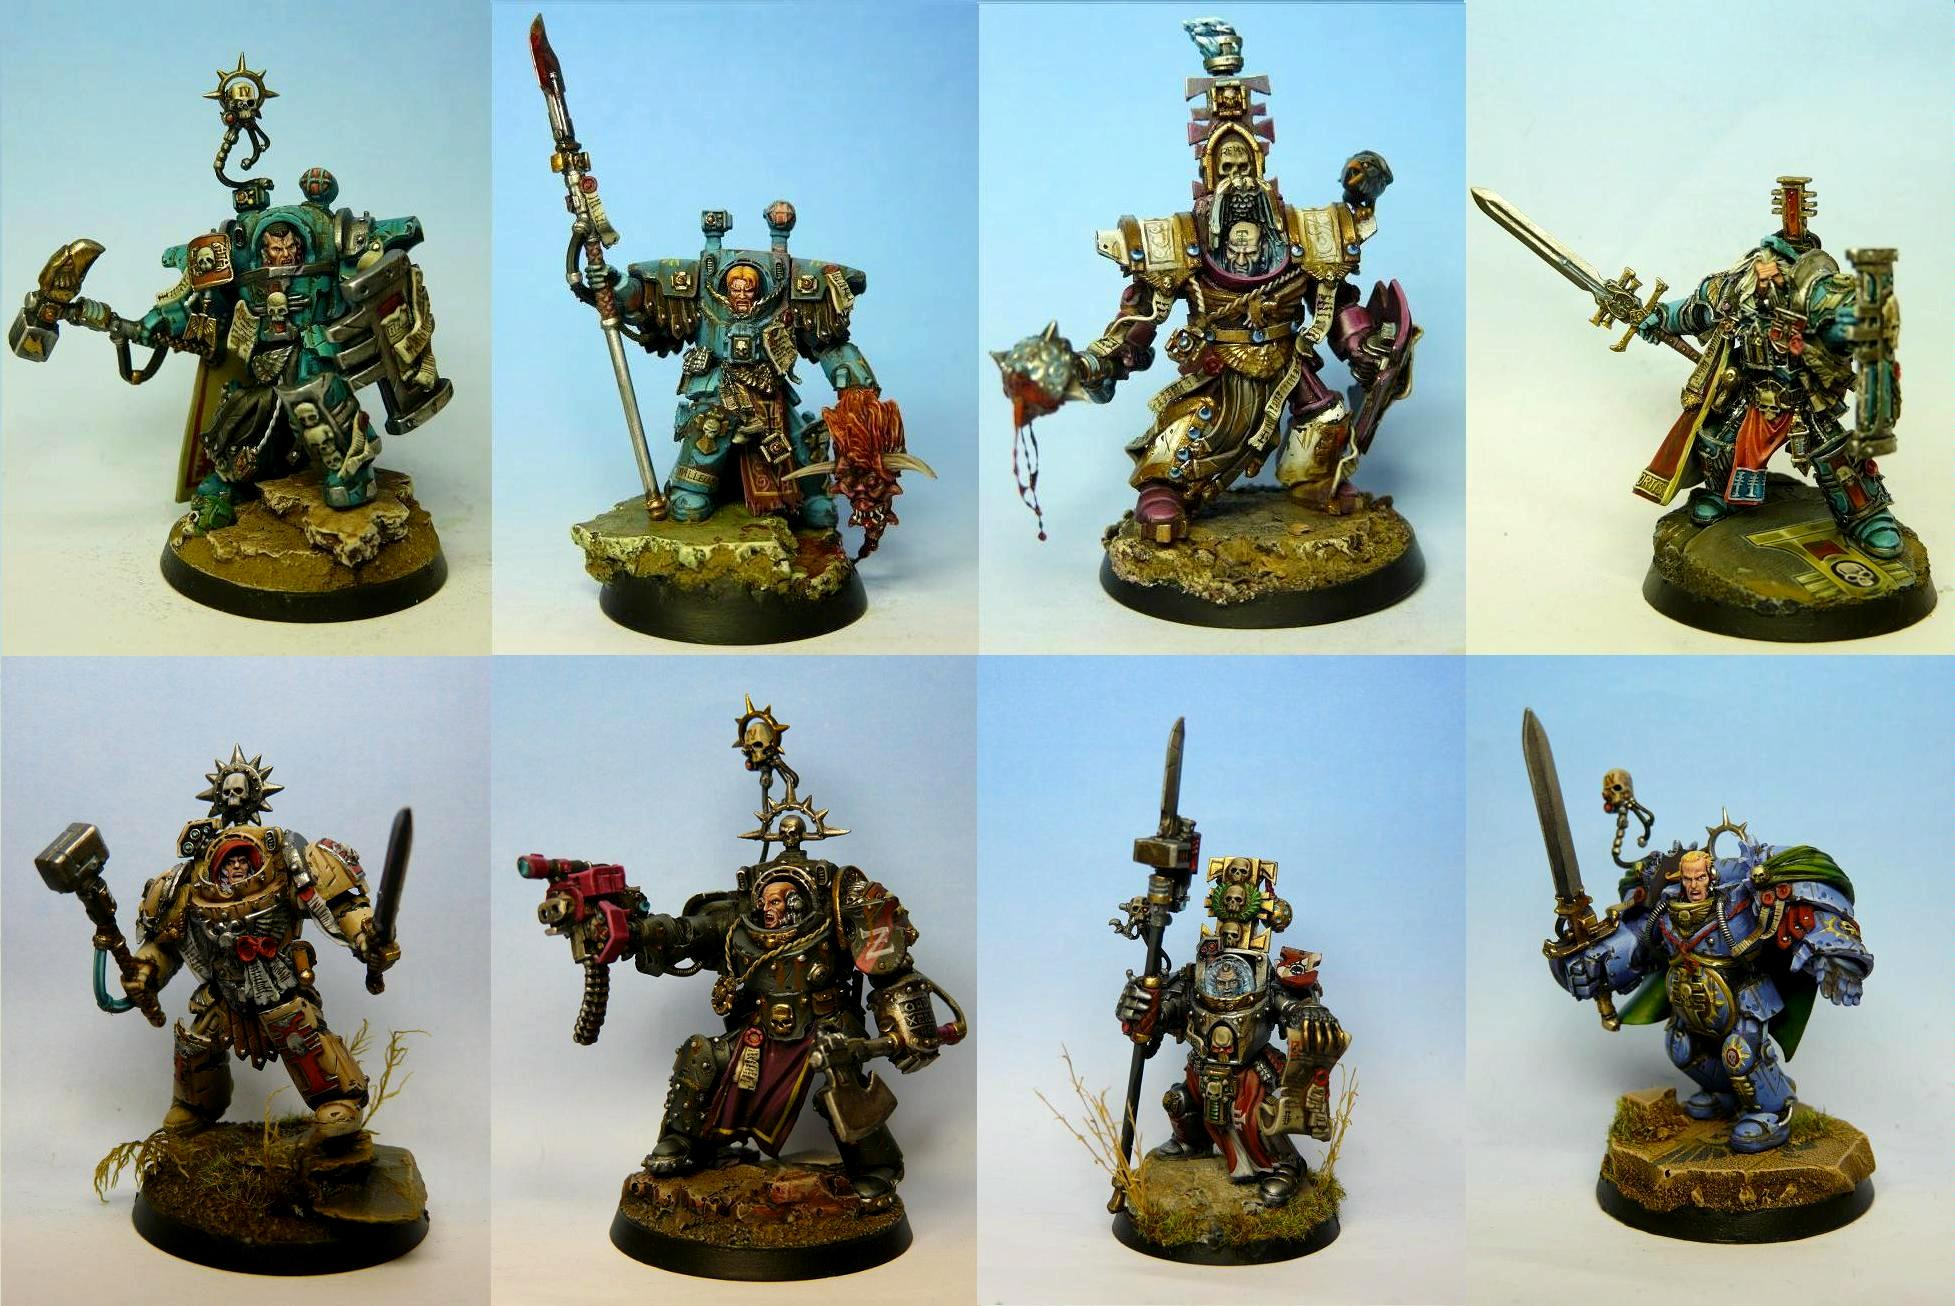 Conversion, Inquisition, Inquisitor, Inquisitors, Ordo Malleus, Raff, Terminator Armor, Warhammer 40,000